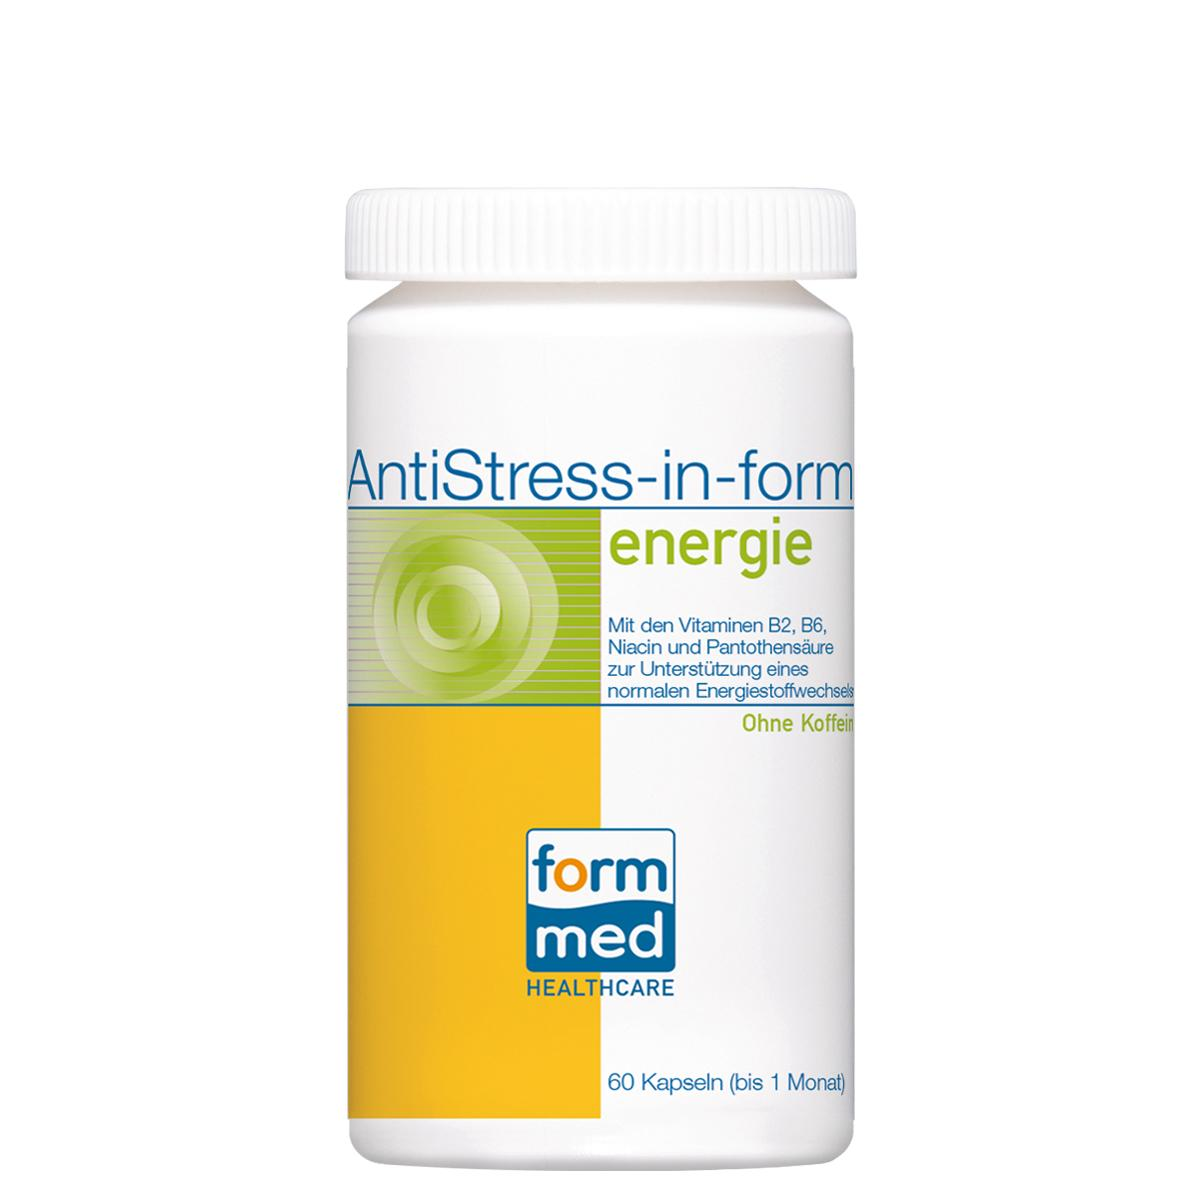 AntiStress-in-form® energie